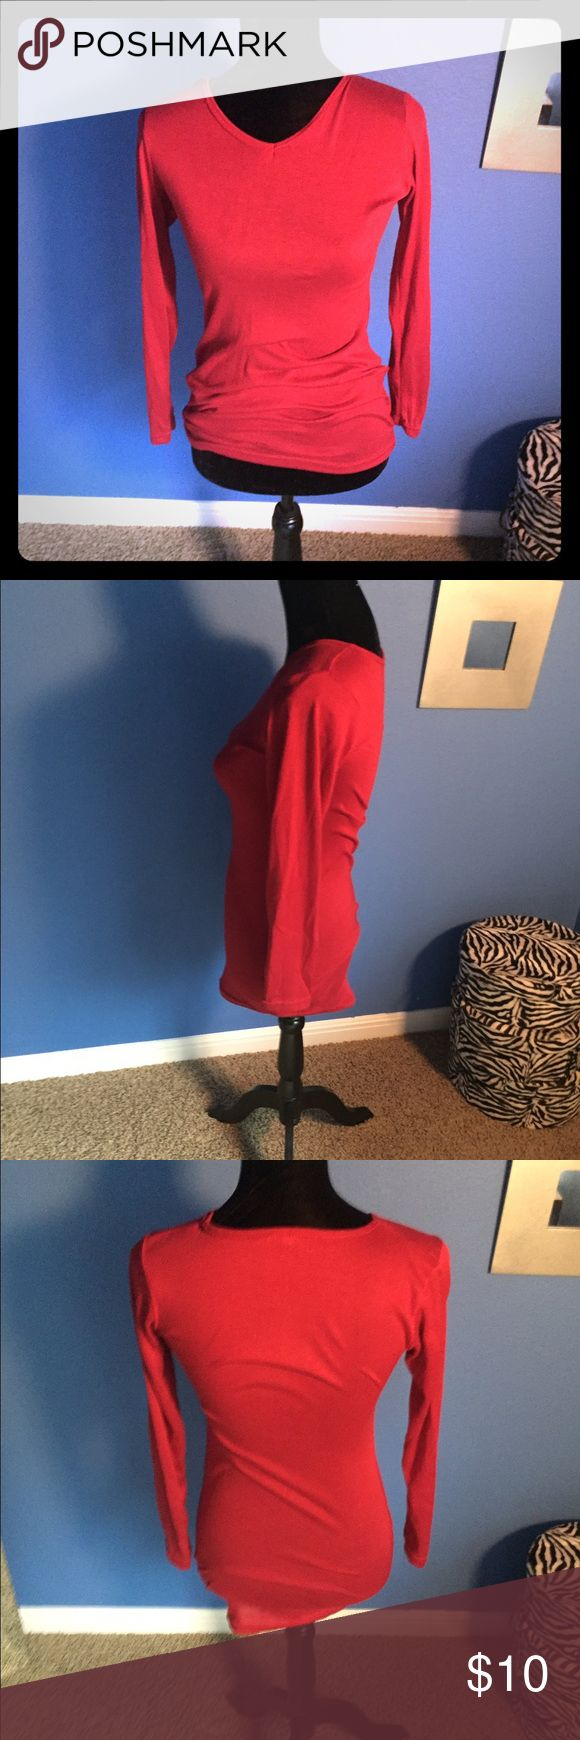 Red long sleeved shirt dress Red long sleeve shirt could be worn as a shirt or a short dress. Thin material, great color. Fits size xs-s Tops Tees - Long Sleeve